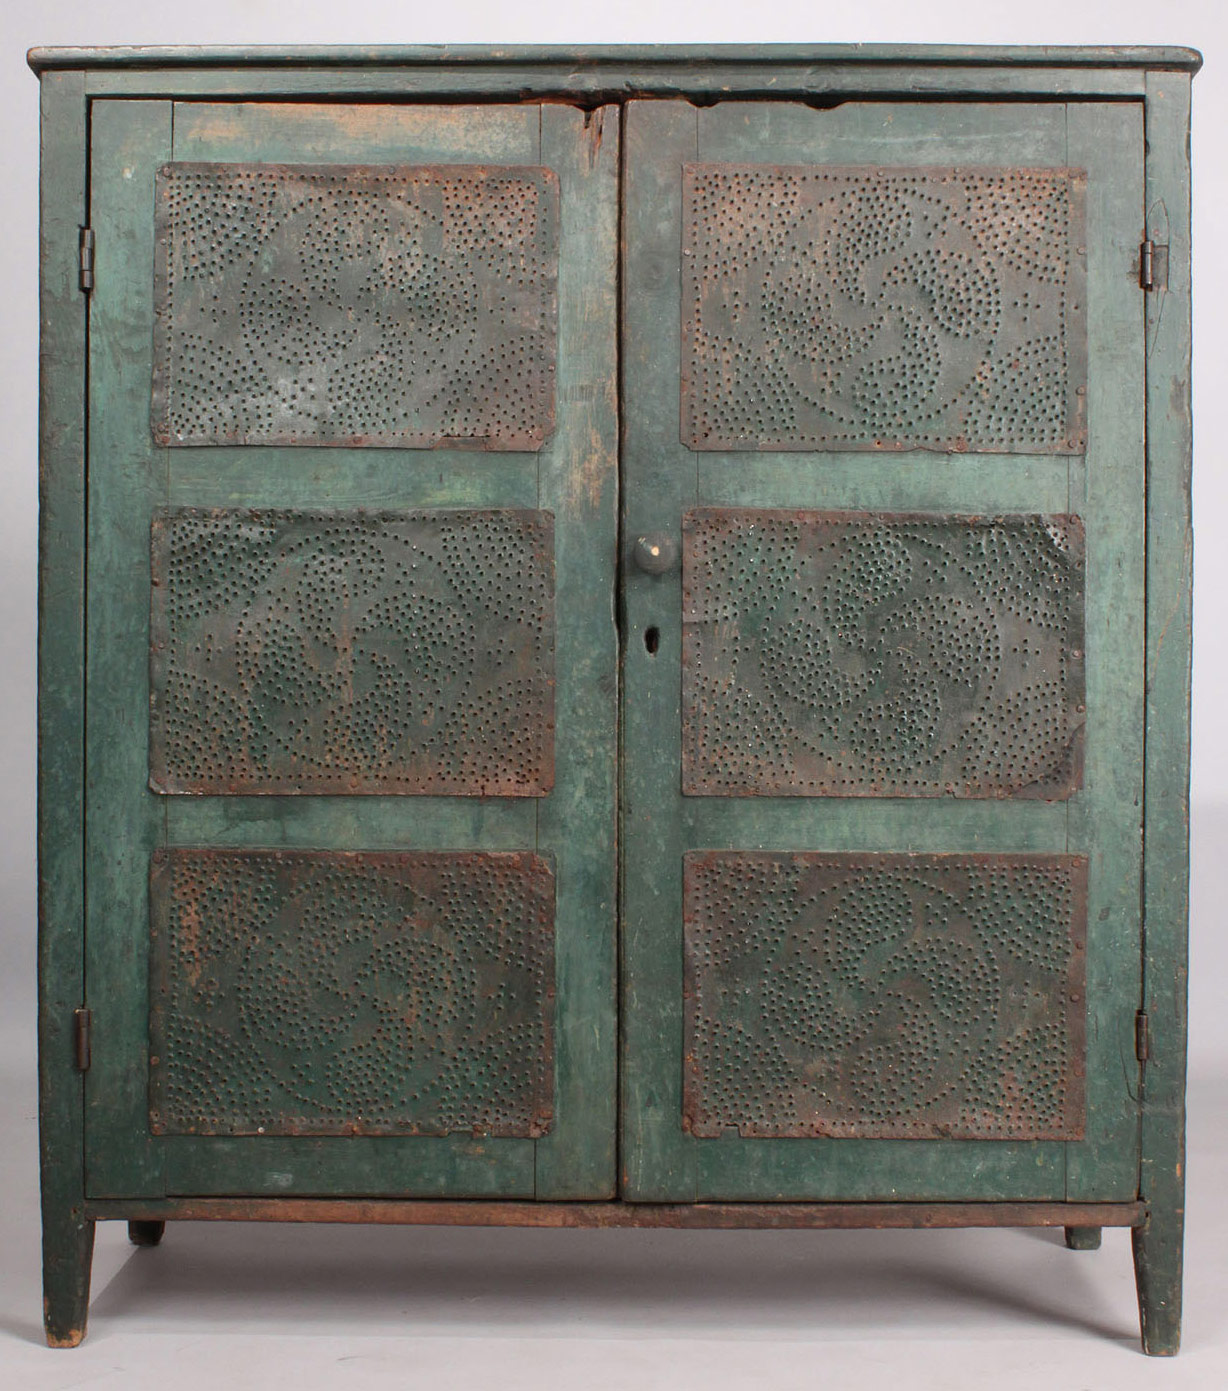 Lot 136: NC Green-painted Pie Safe - 136: NC Green-painted Pie Safe